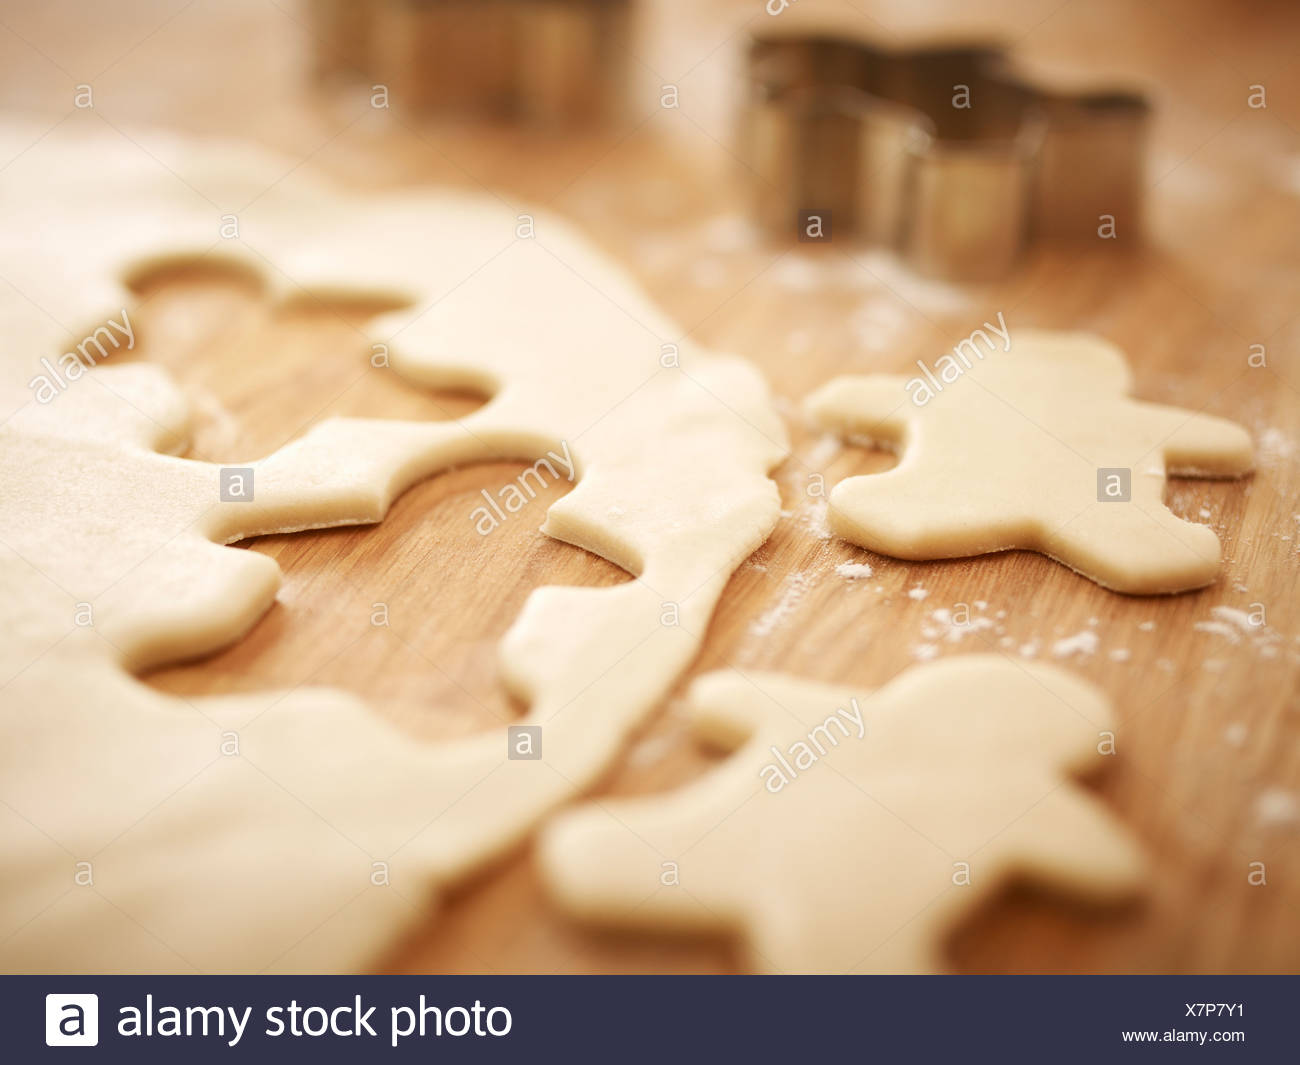 Gingerbread men cookie dough - Stock Image